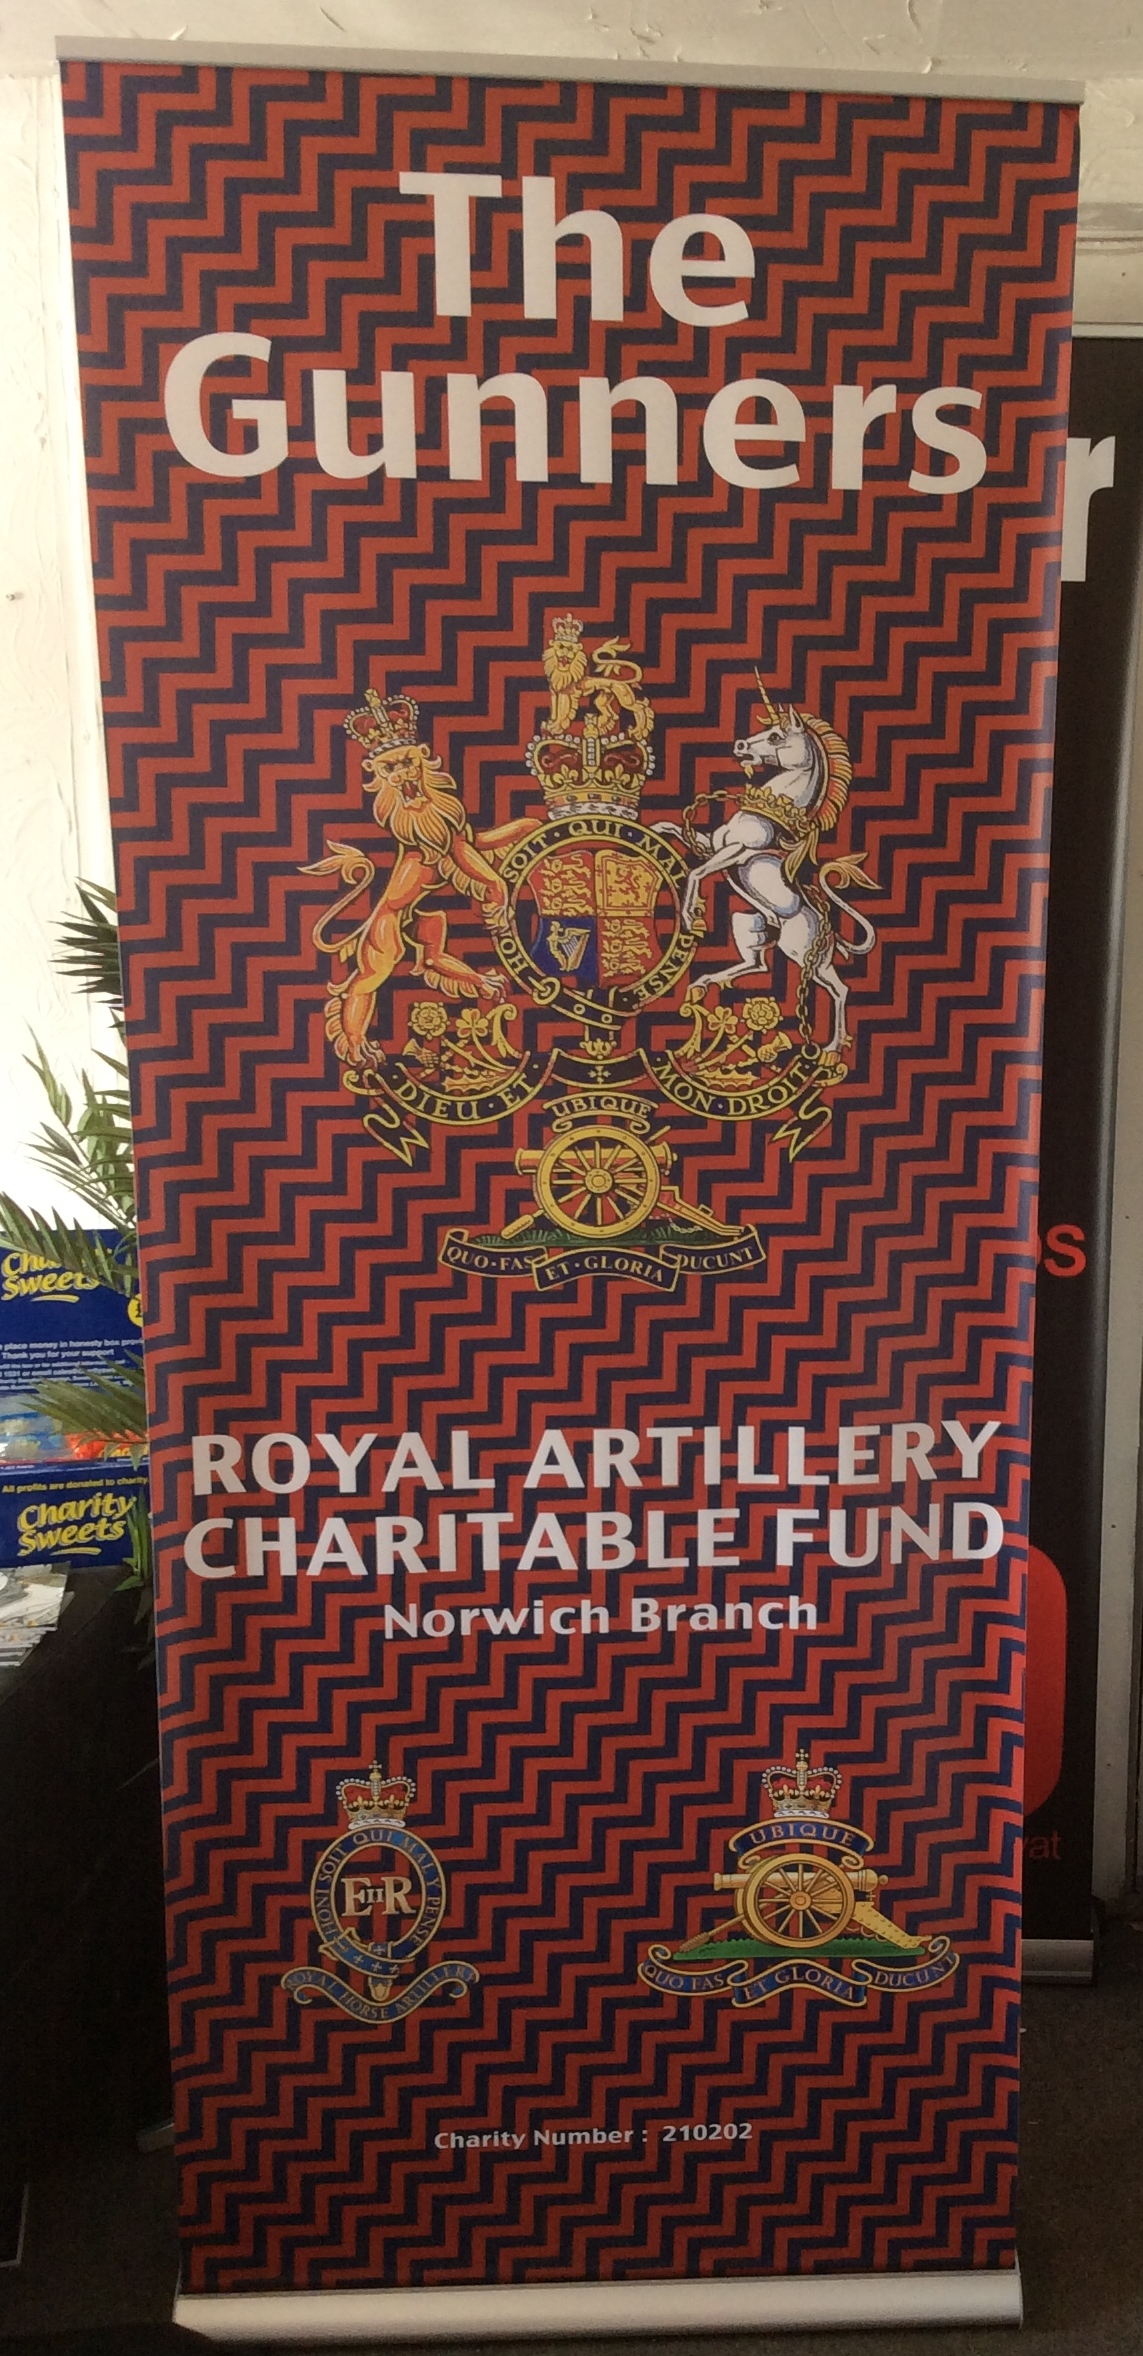 Norwich Branch RAA - New Banner Looks great!